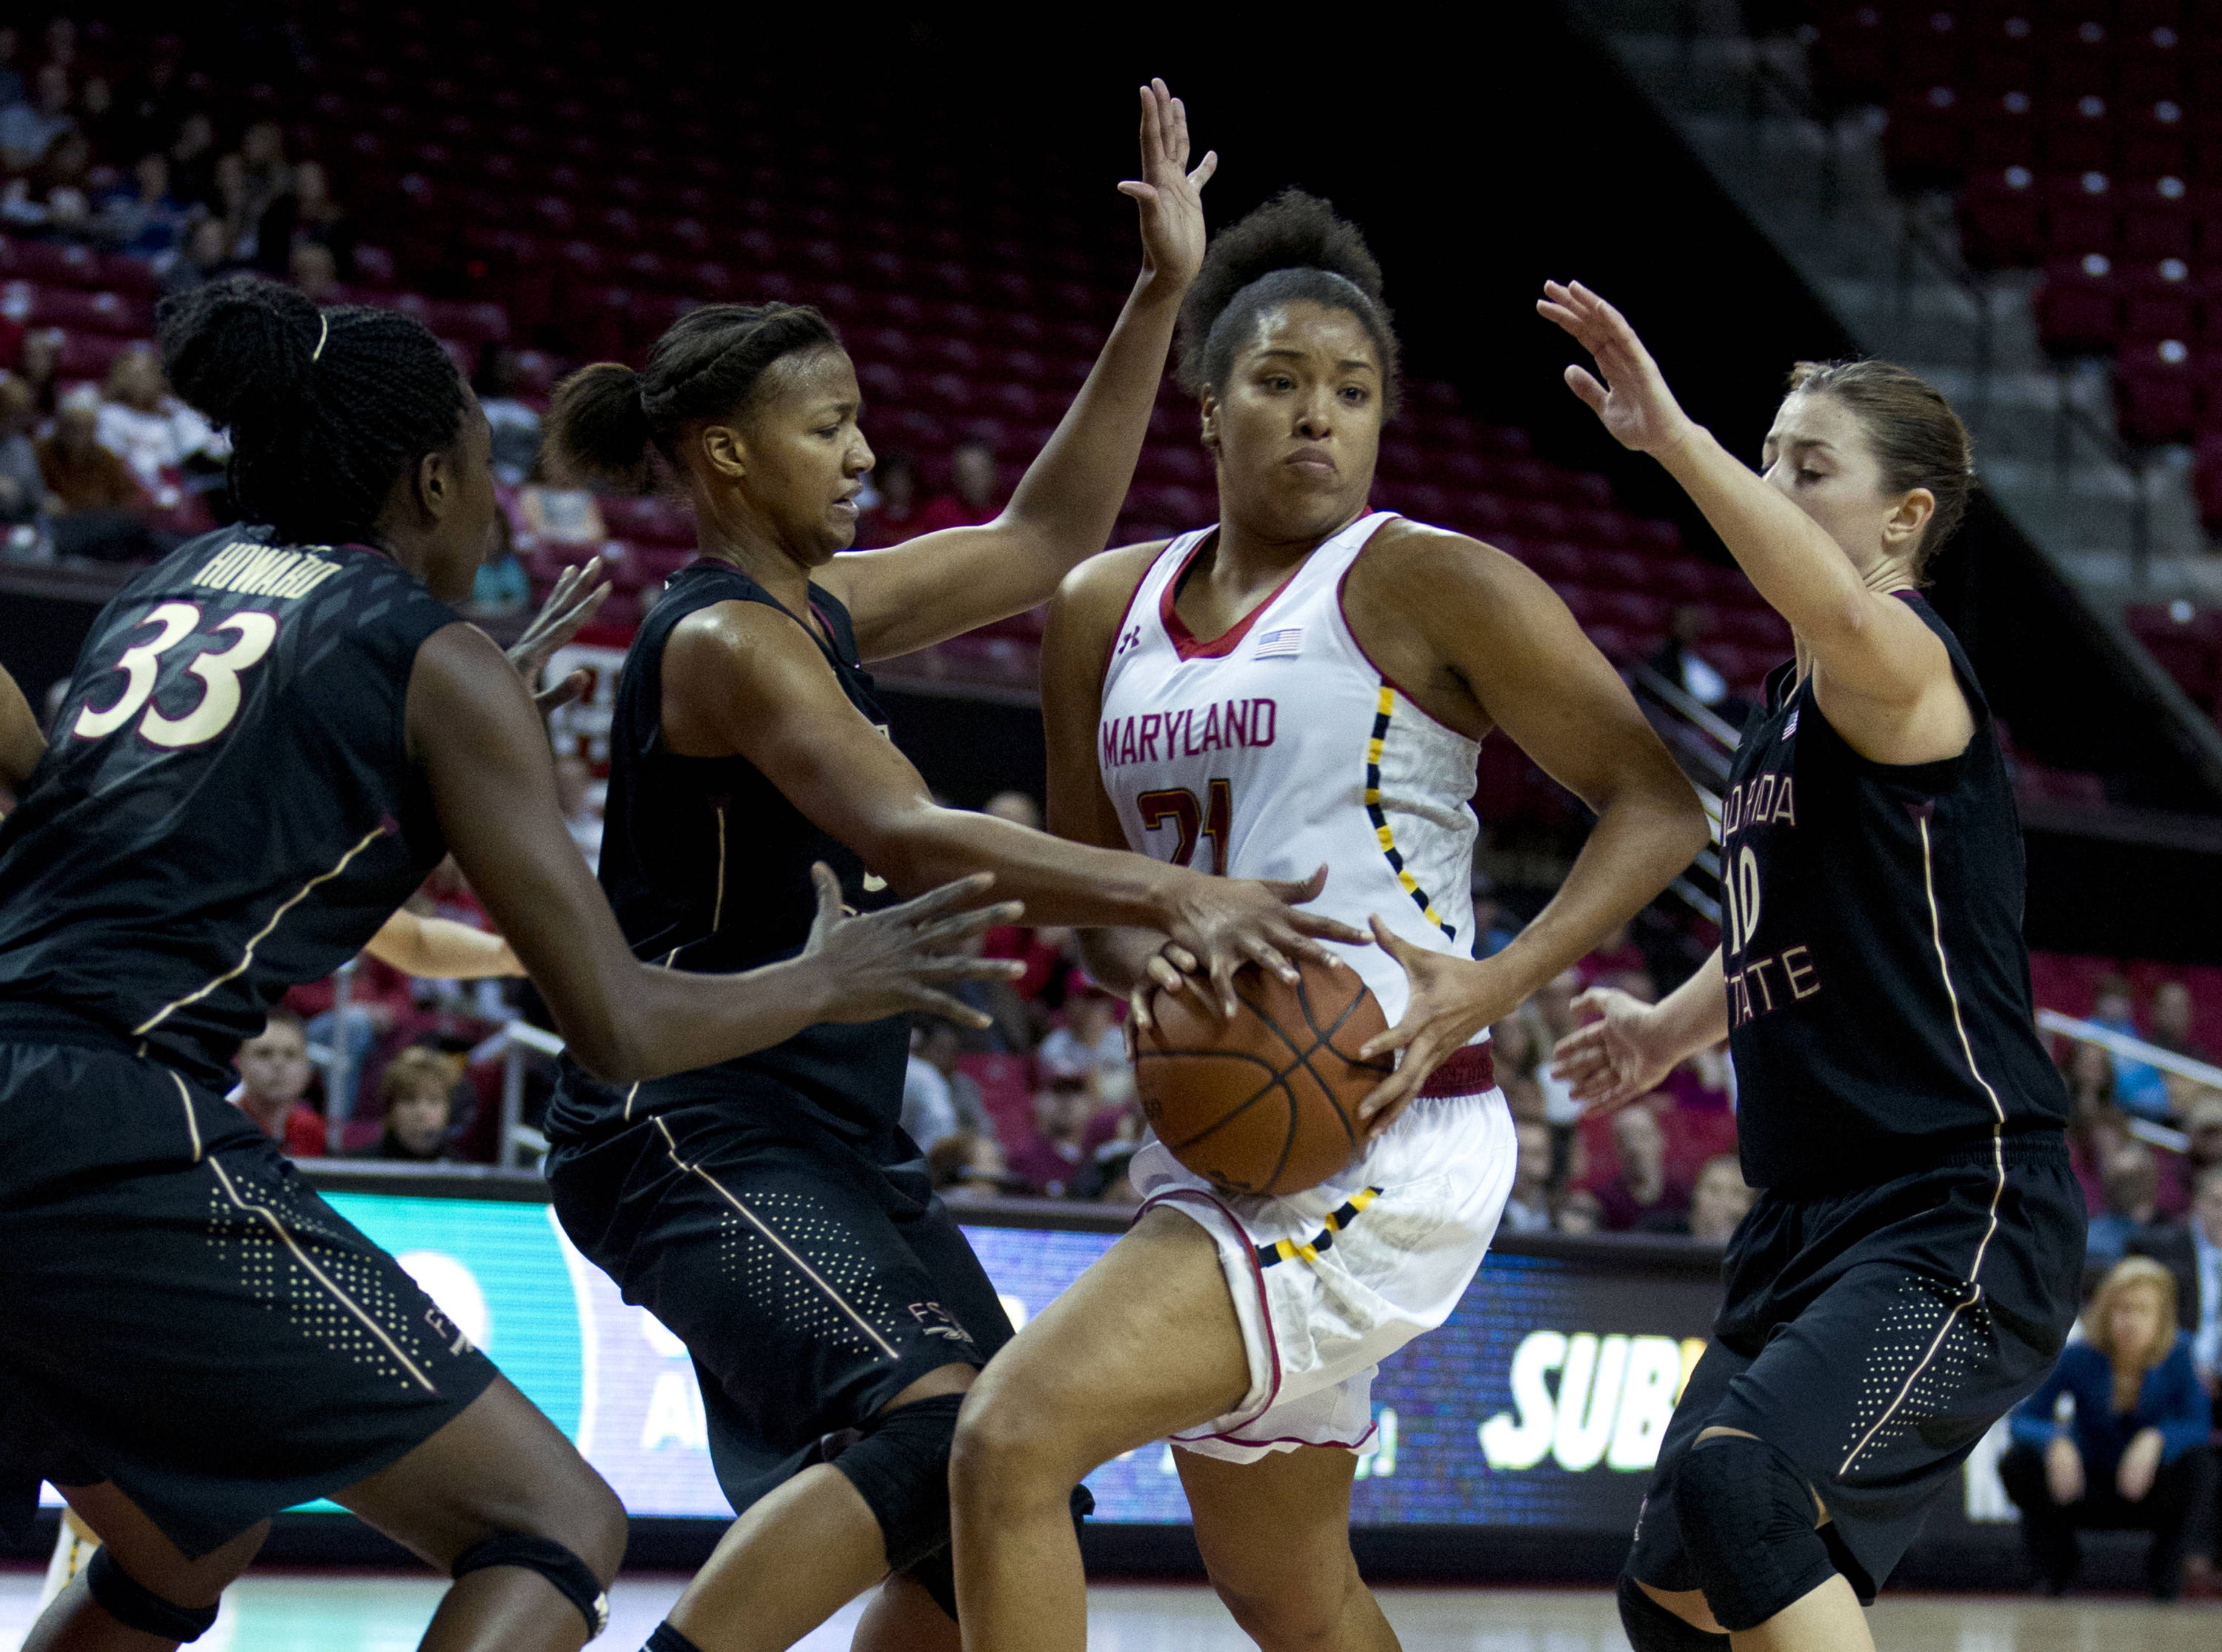 Maryland's Tianna Hawkins (21) moves the ball against Florida State's Natasha Howard (33), Chelsea Davis (34) and Leonor Rodriguez (10) who try to block during the second half. (AP Photo/Jose Luis Magana)